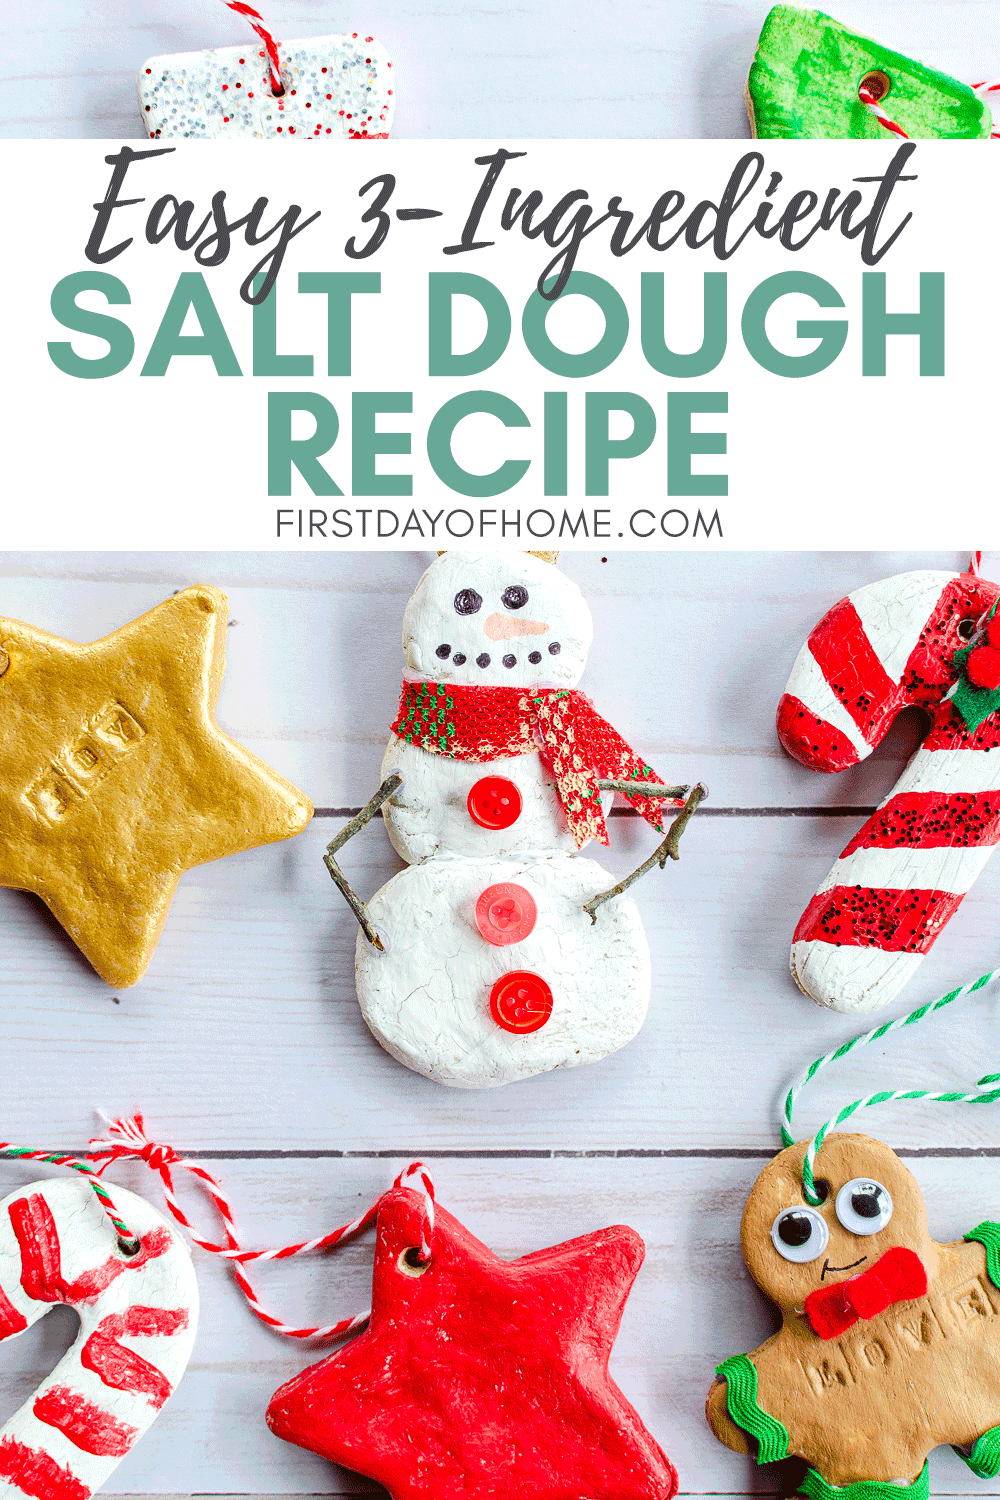 How To Make Salt Dough Ornaments The Kids Will Love Recipe Salt Dough Christmas Ornaments Dough Ornaments Salt Dough Ornaments